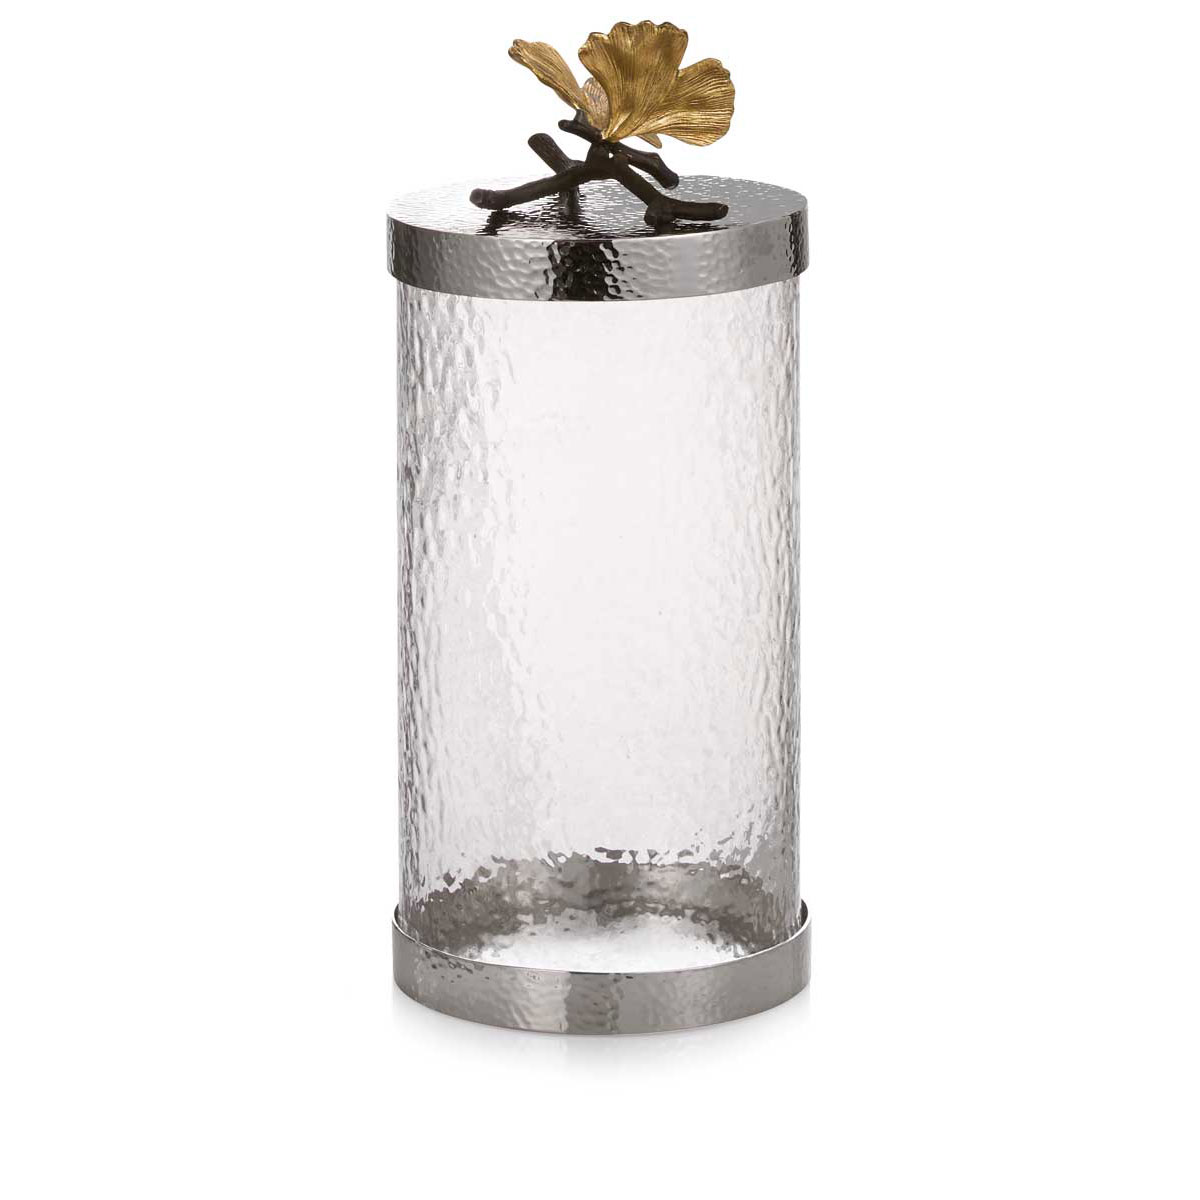 Michael Aram Butterfly Ginkgo Kitchen Canister, Large